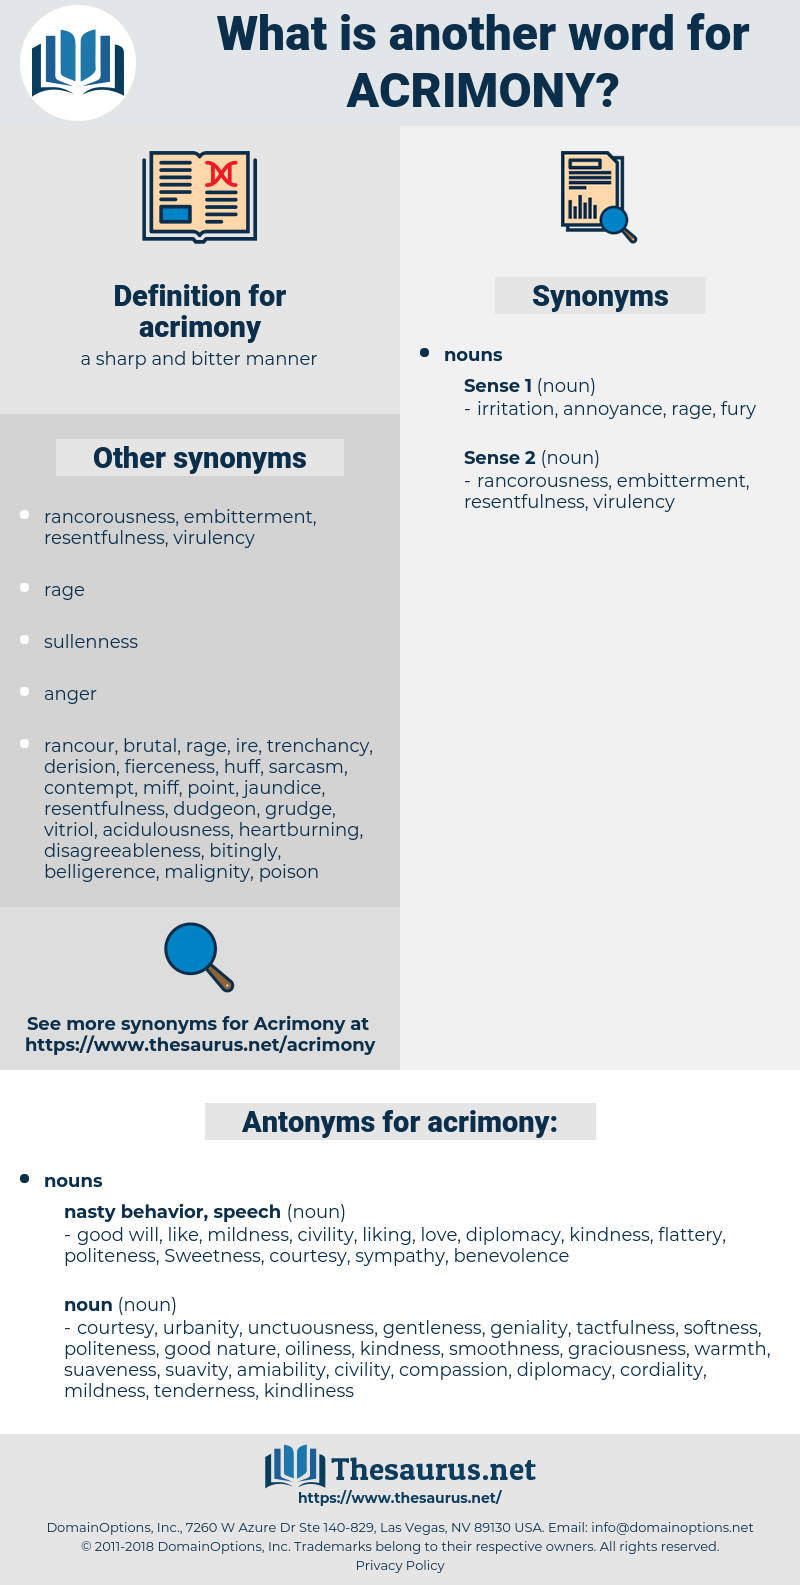 acrimony, synonym acrimony, another word for acrimony, words like acrimony, thesaurus acrimony